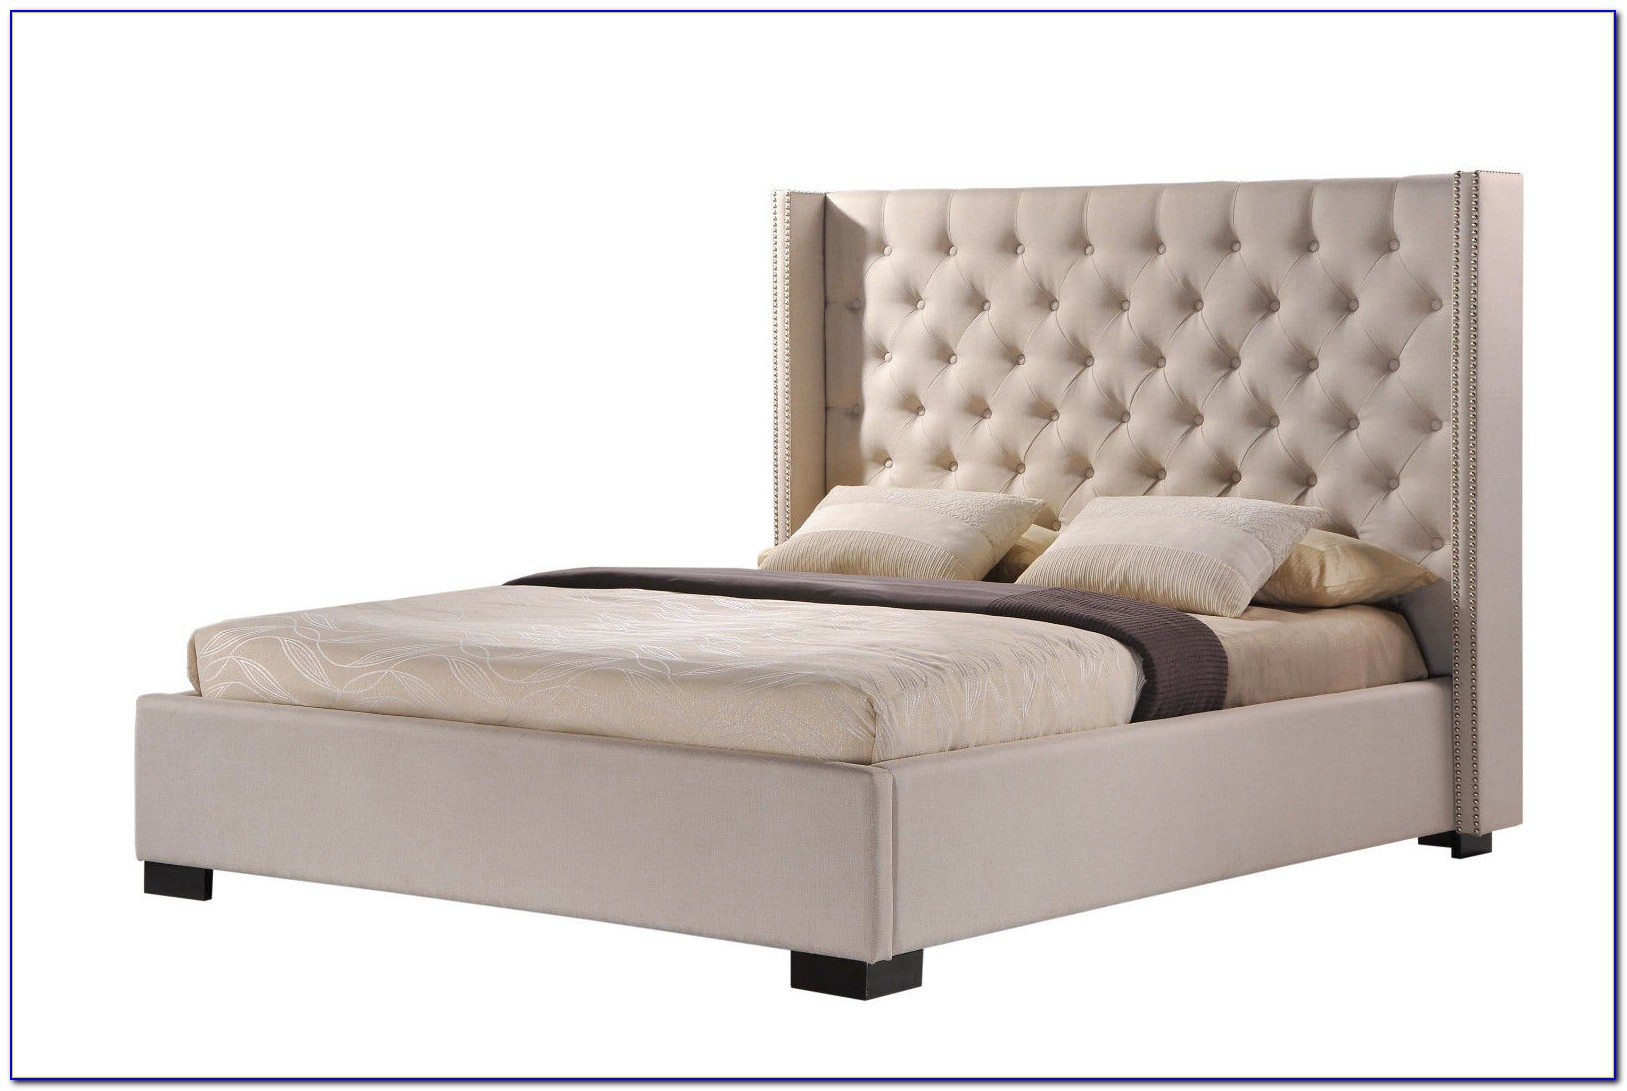 Tufted Wingback Bed With Footboard